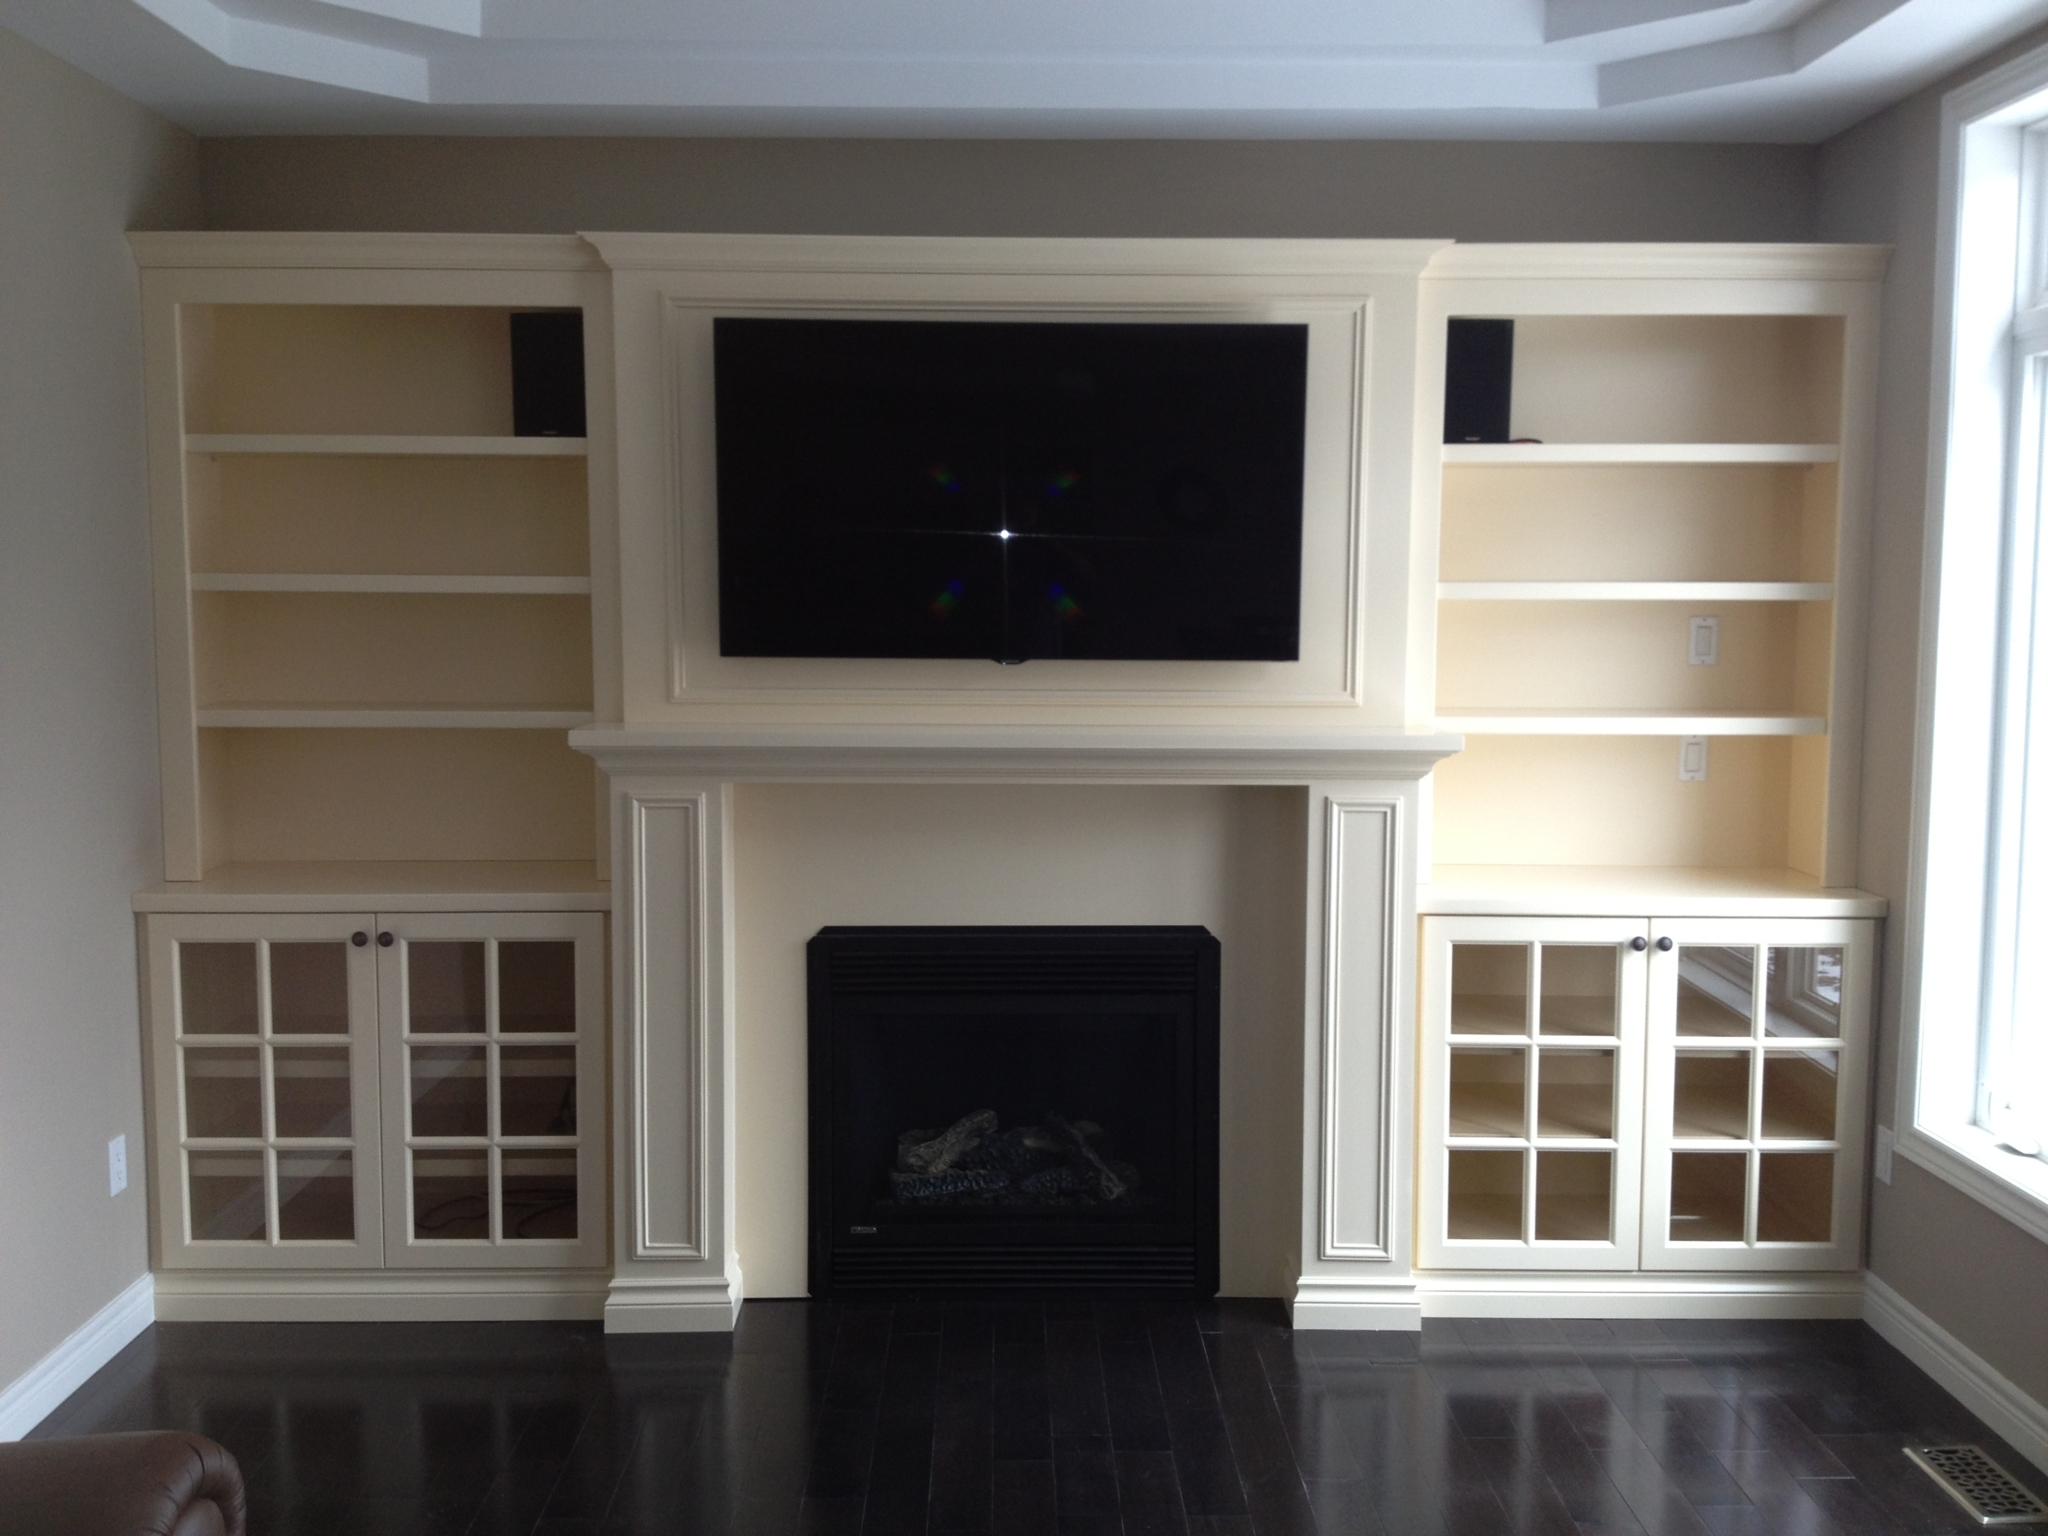 Phoenix cabinetry millwork 2 249 bunting rd st for Cabinex kitchen designs st catharines